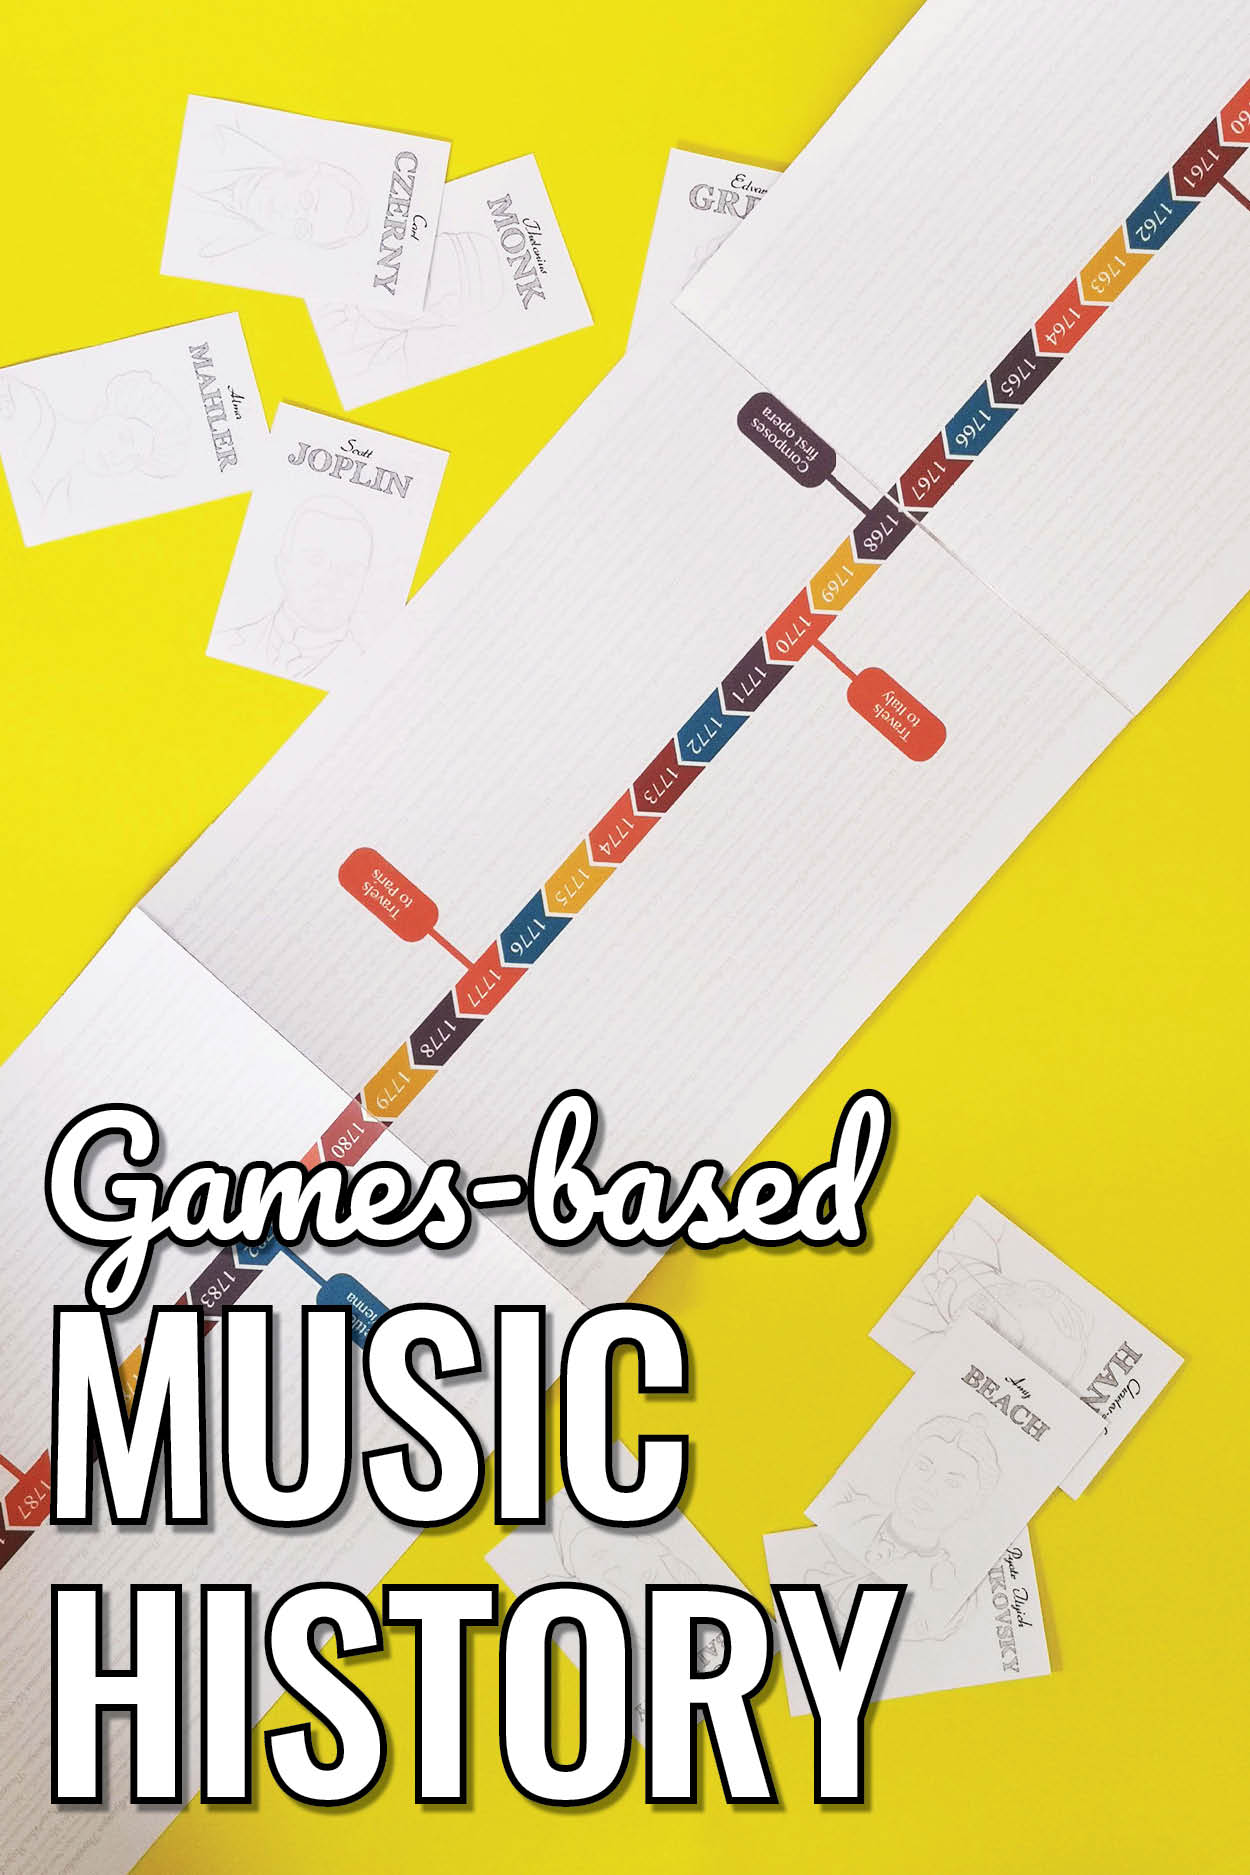 How to teach your students more music history using games and other fun activities.